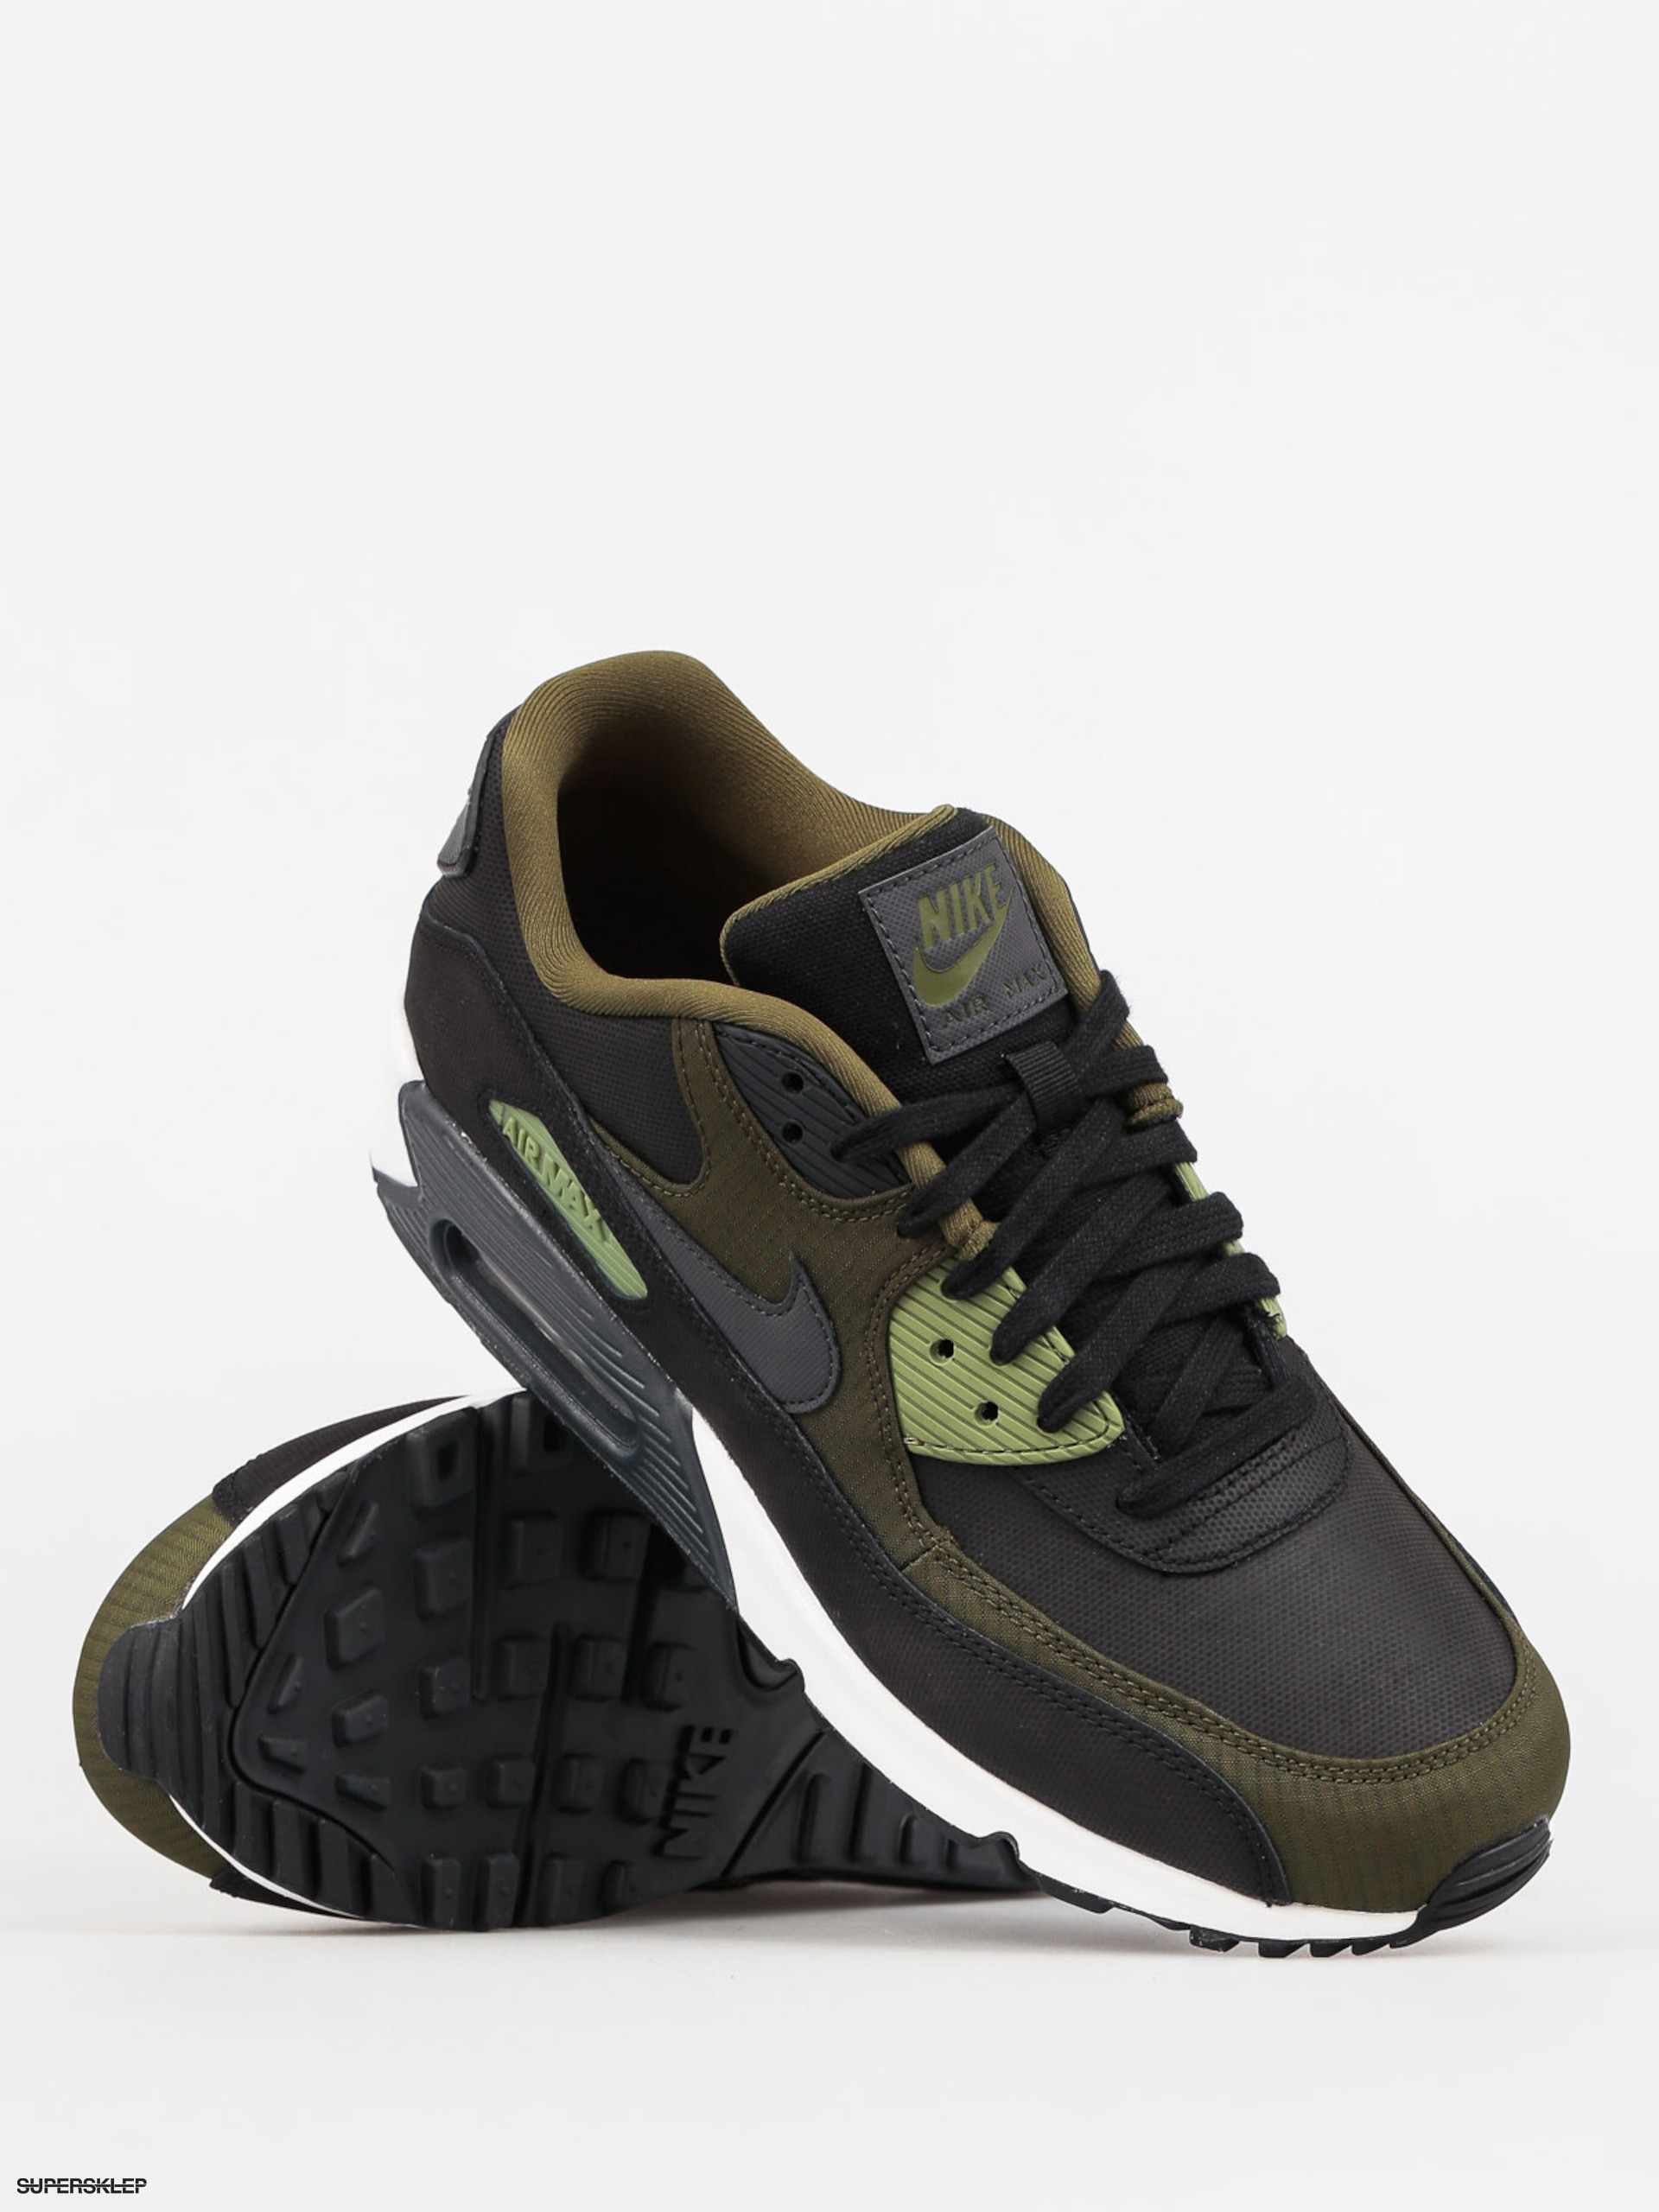 50% off nike air max 90 legion verde f839c f7560